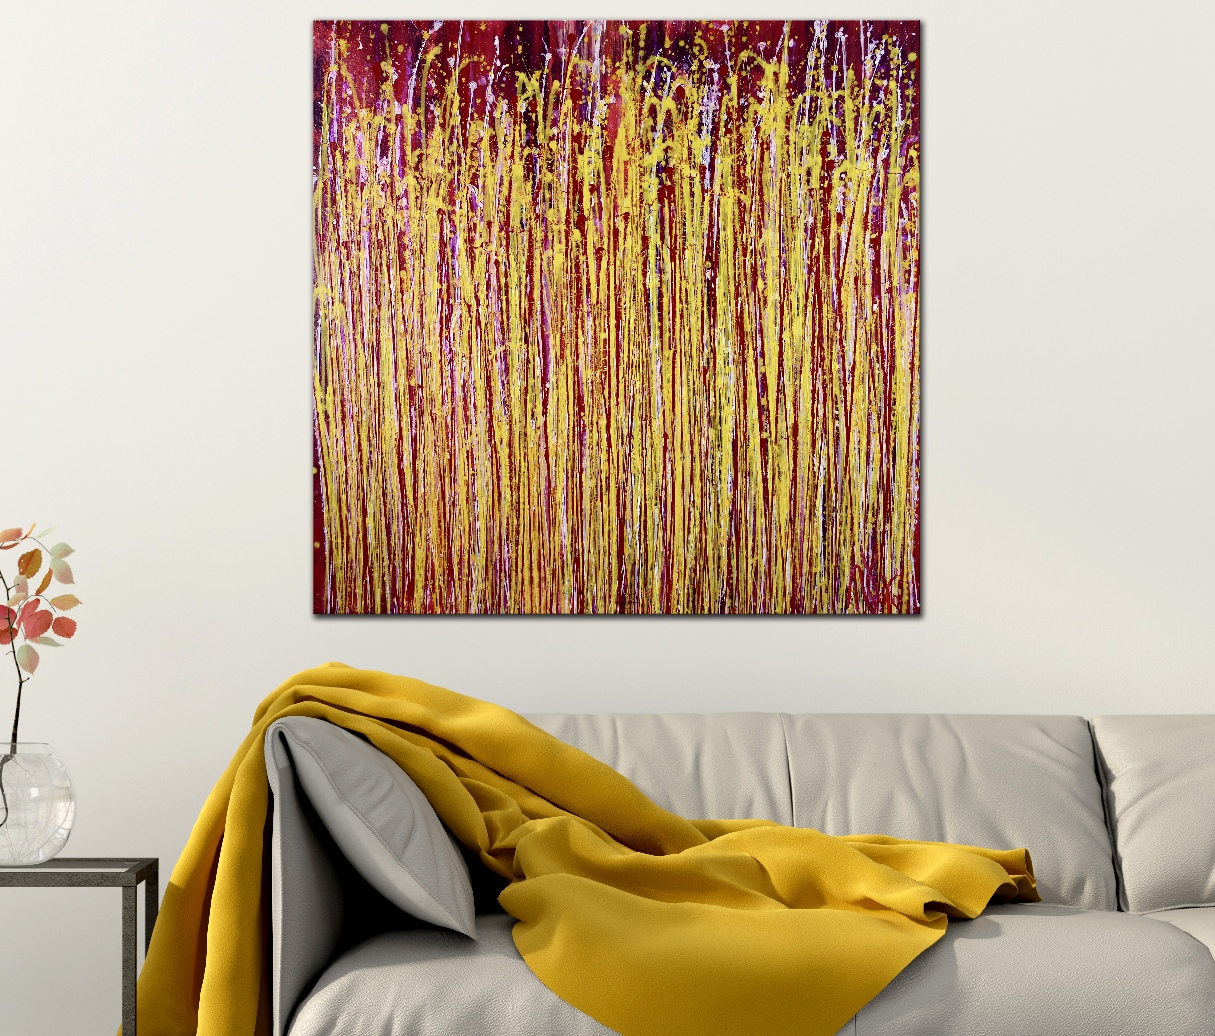 Room View - A Delicate Chaos (Metallic Spectra) by Nestor Toro